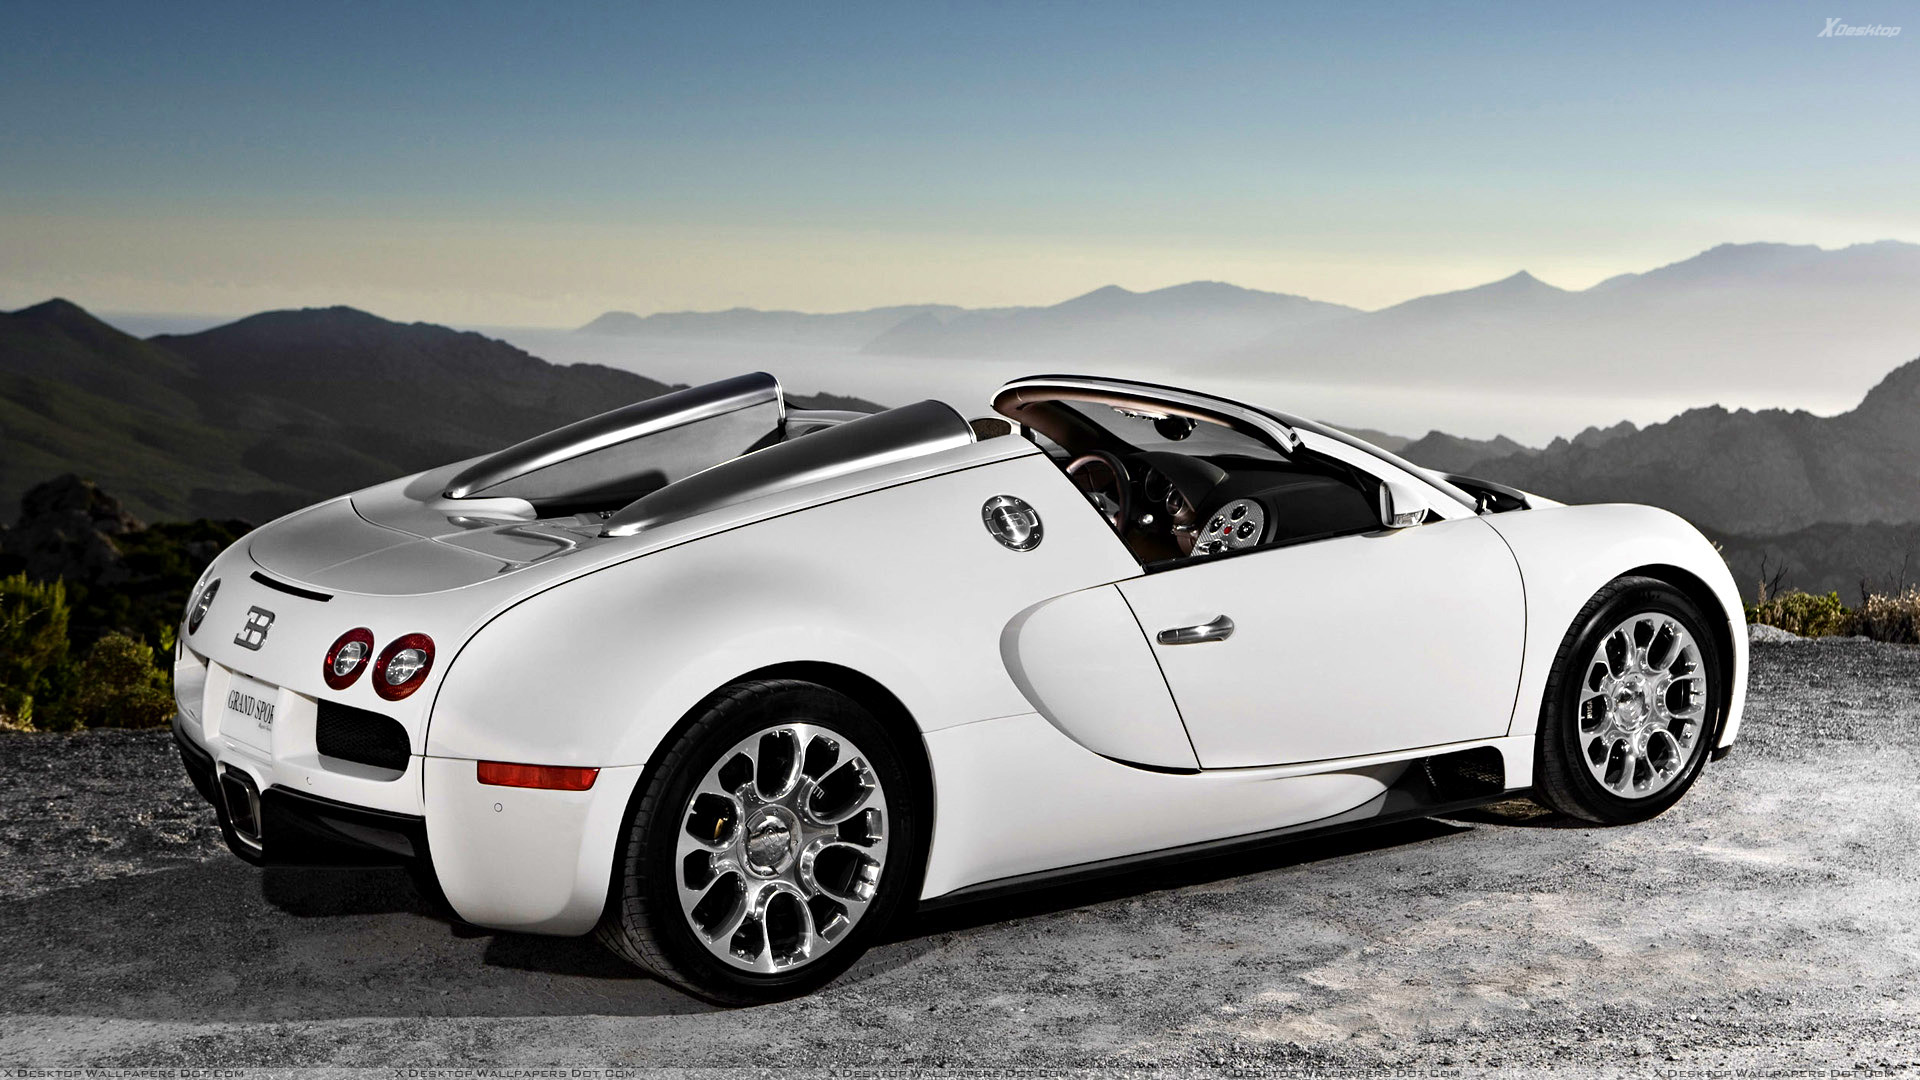 ... Grand Cars Bugatti Back On Fisker Karma Car Back, Saturn Car Back,  Spada Car · Bugatti Veyron 16.4 Grand Sport ...